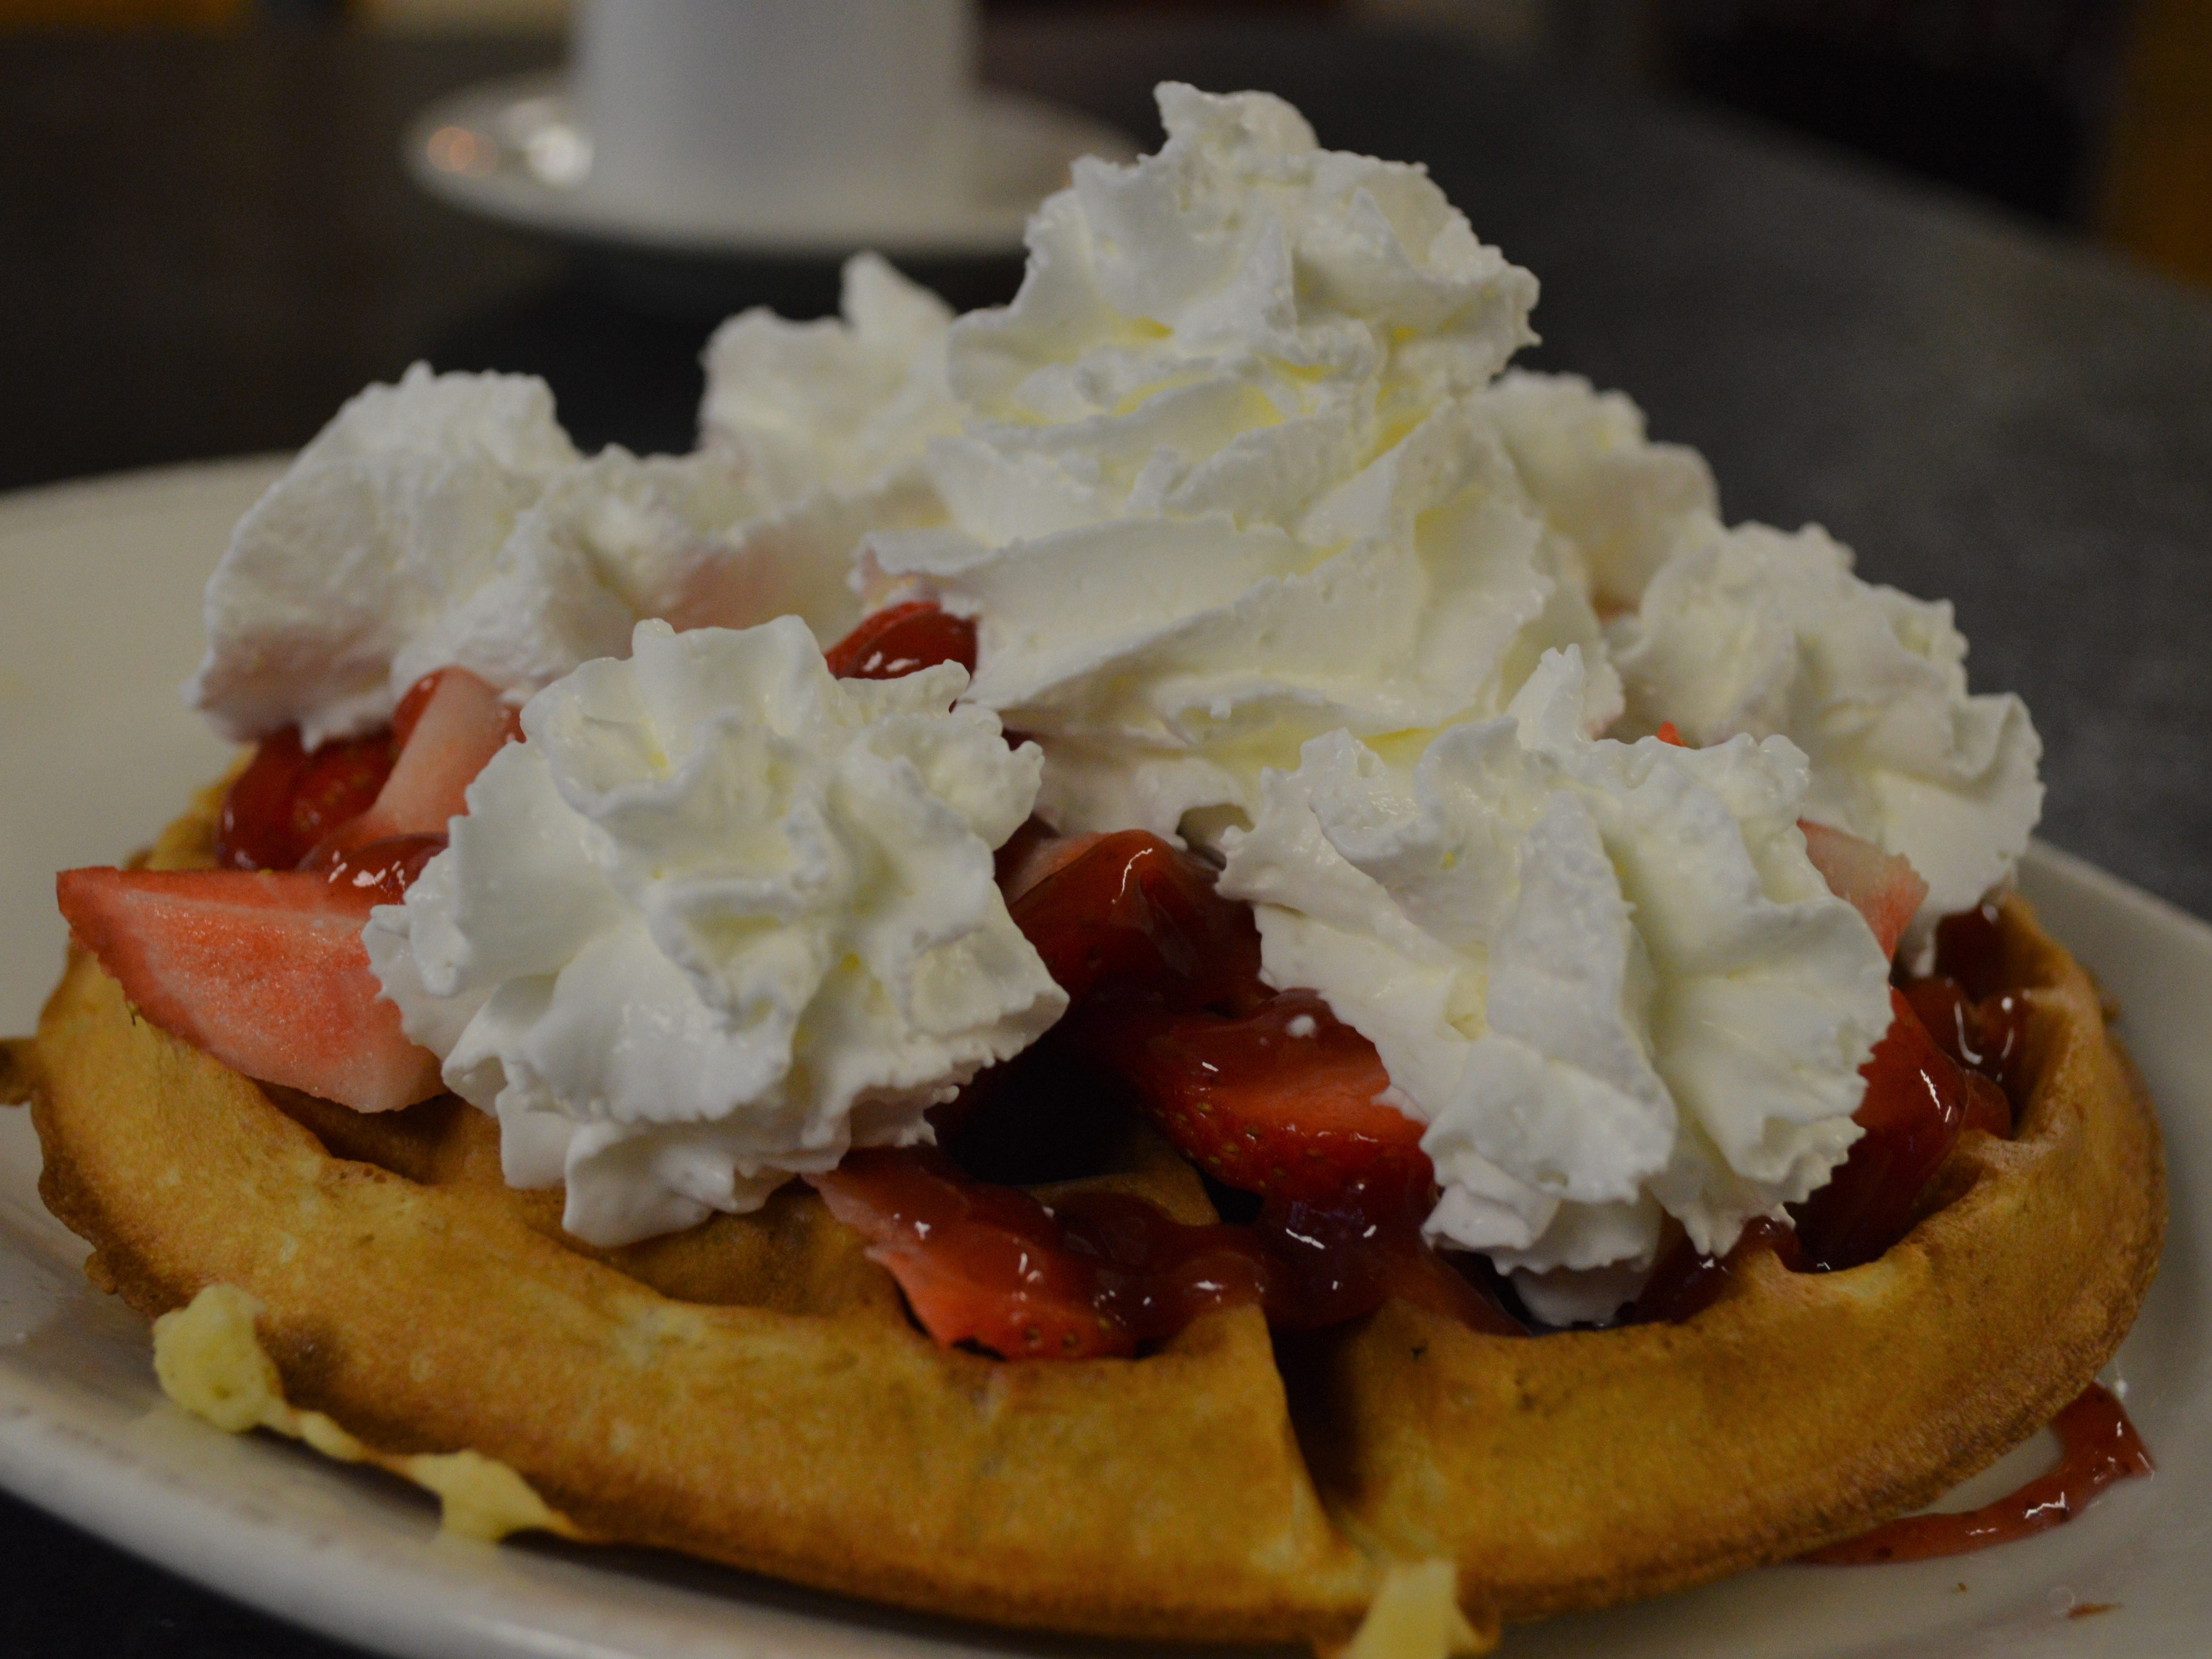 A fresh fruit waffle with whipped cream costs $8.95. The cafe has fresh strawberries, blueberries and bananas.